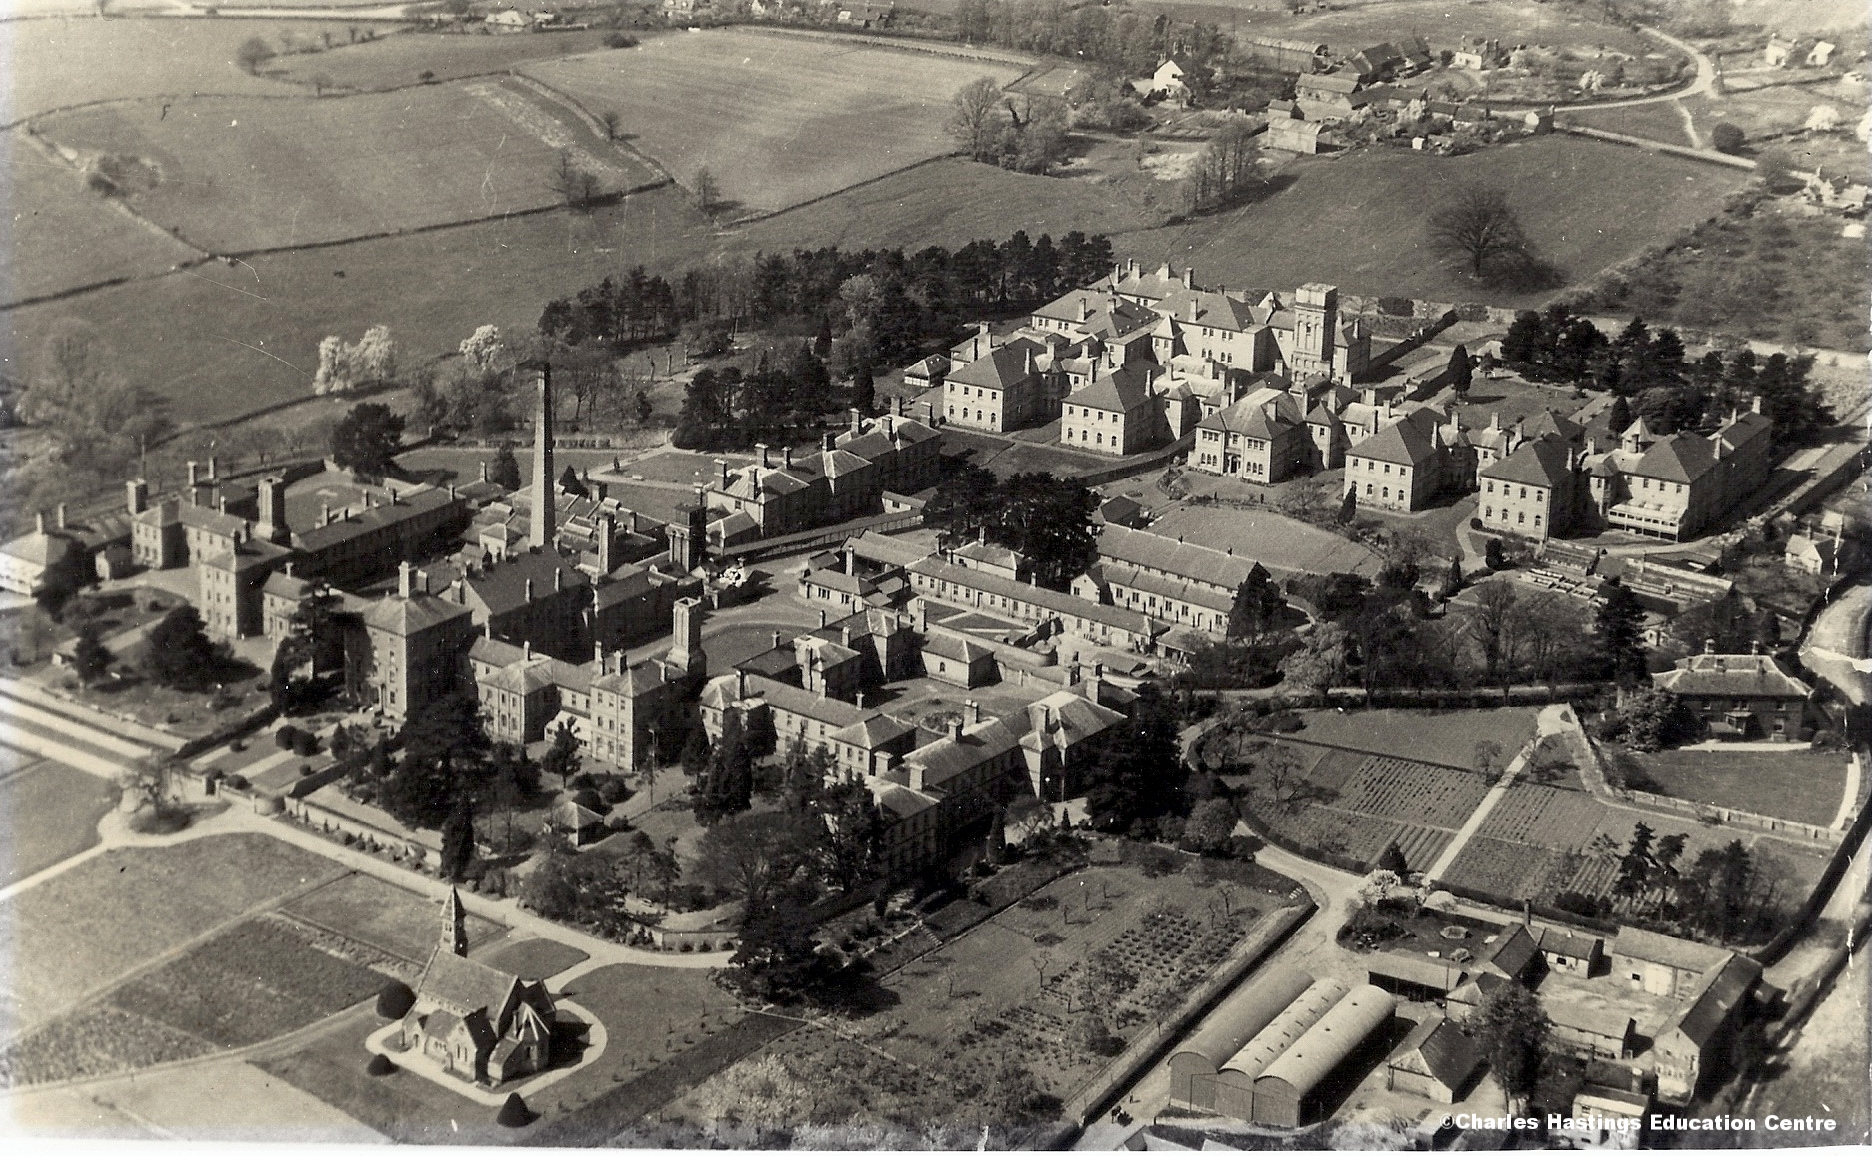 Powick Hospital from the air, ©Charles Hastings Education Centre